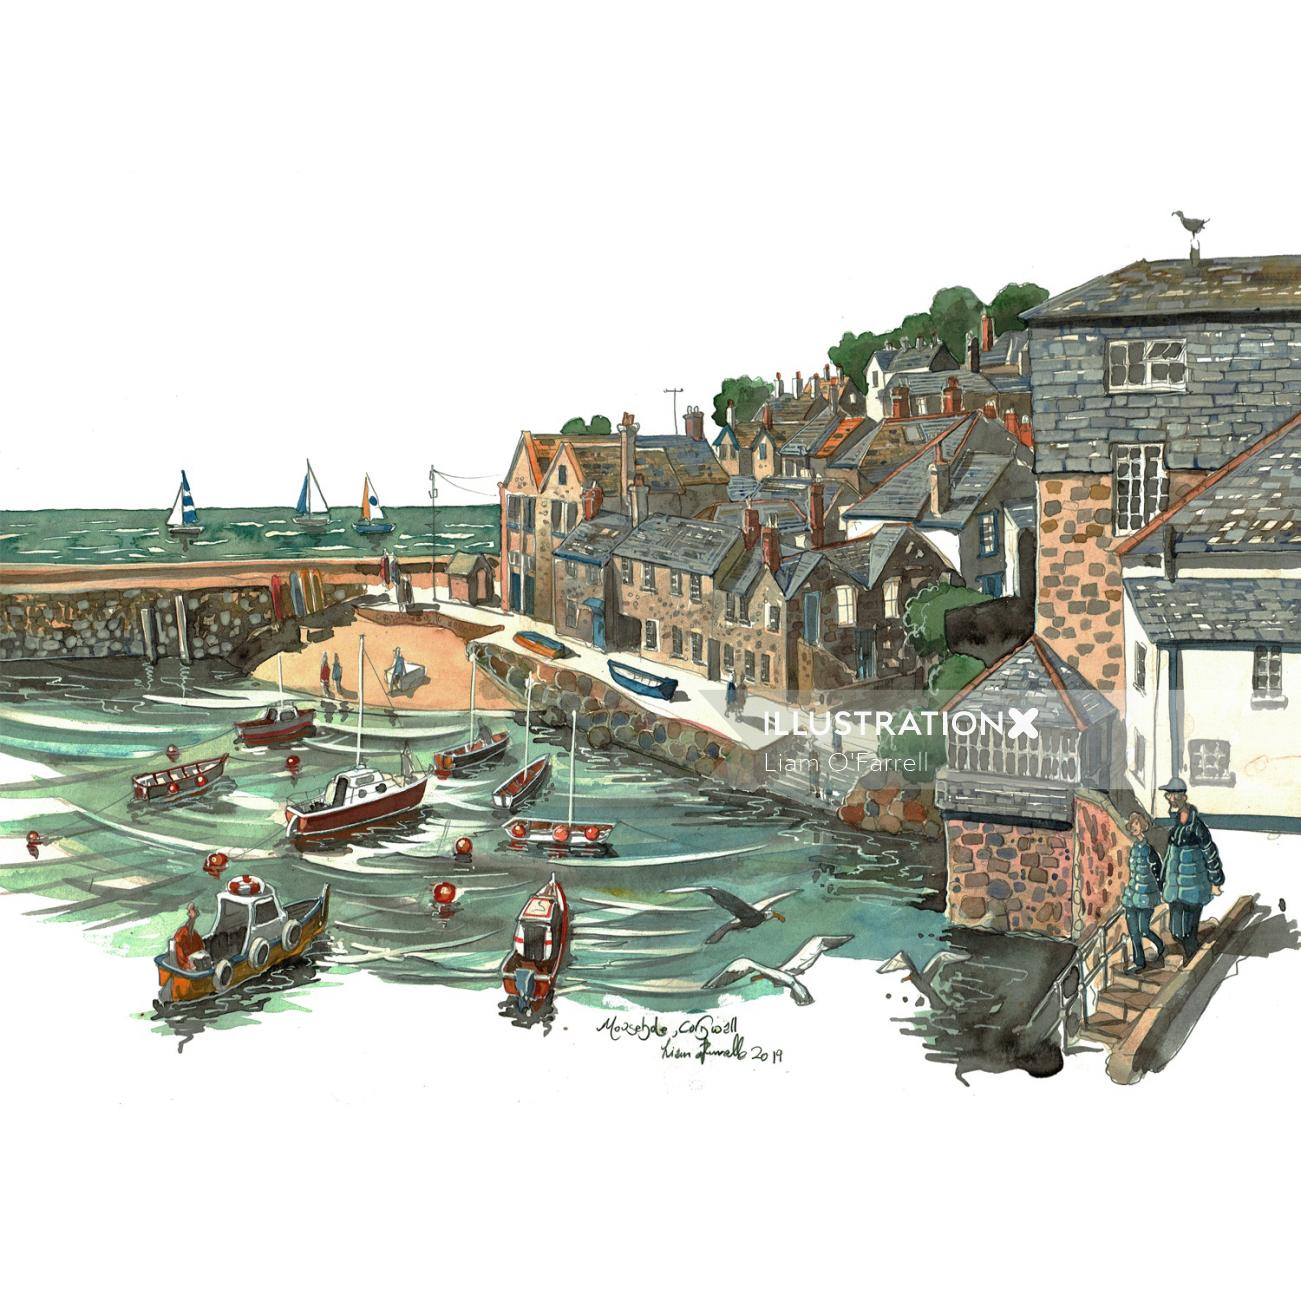 The harbour of Mousehole in Cornwall